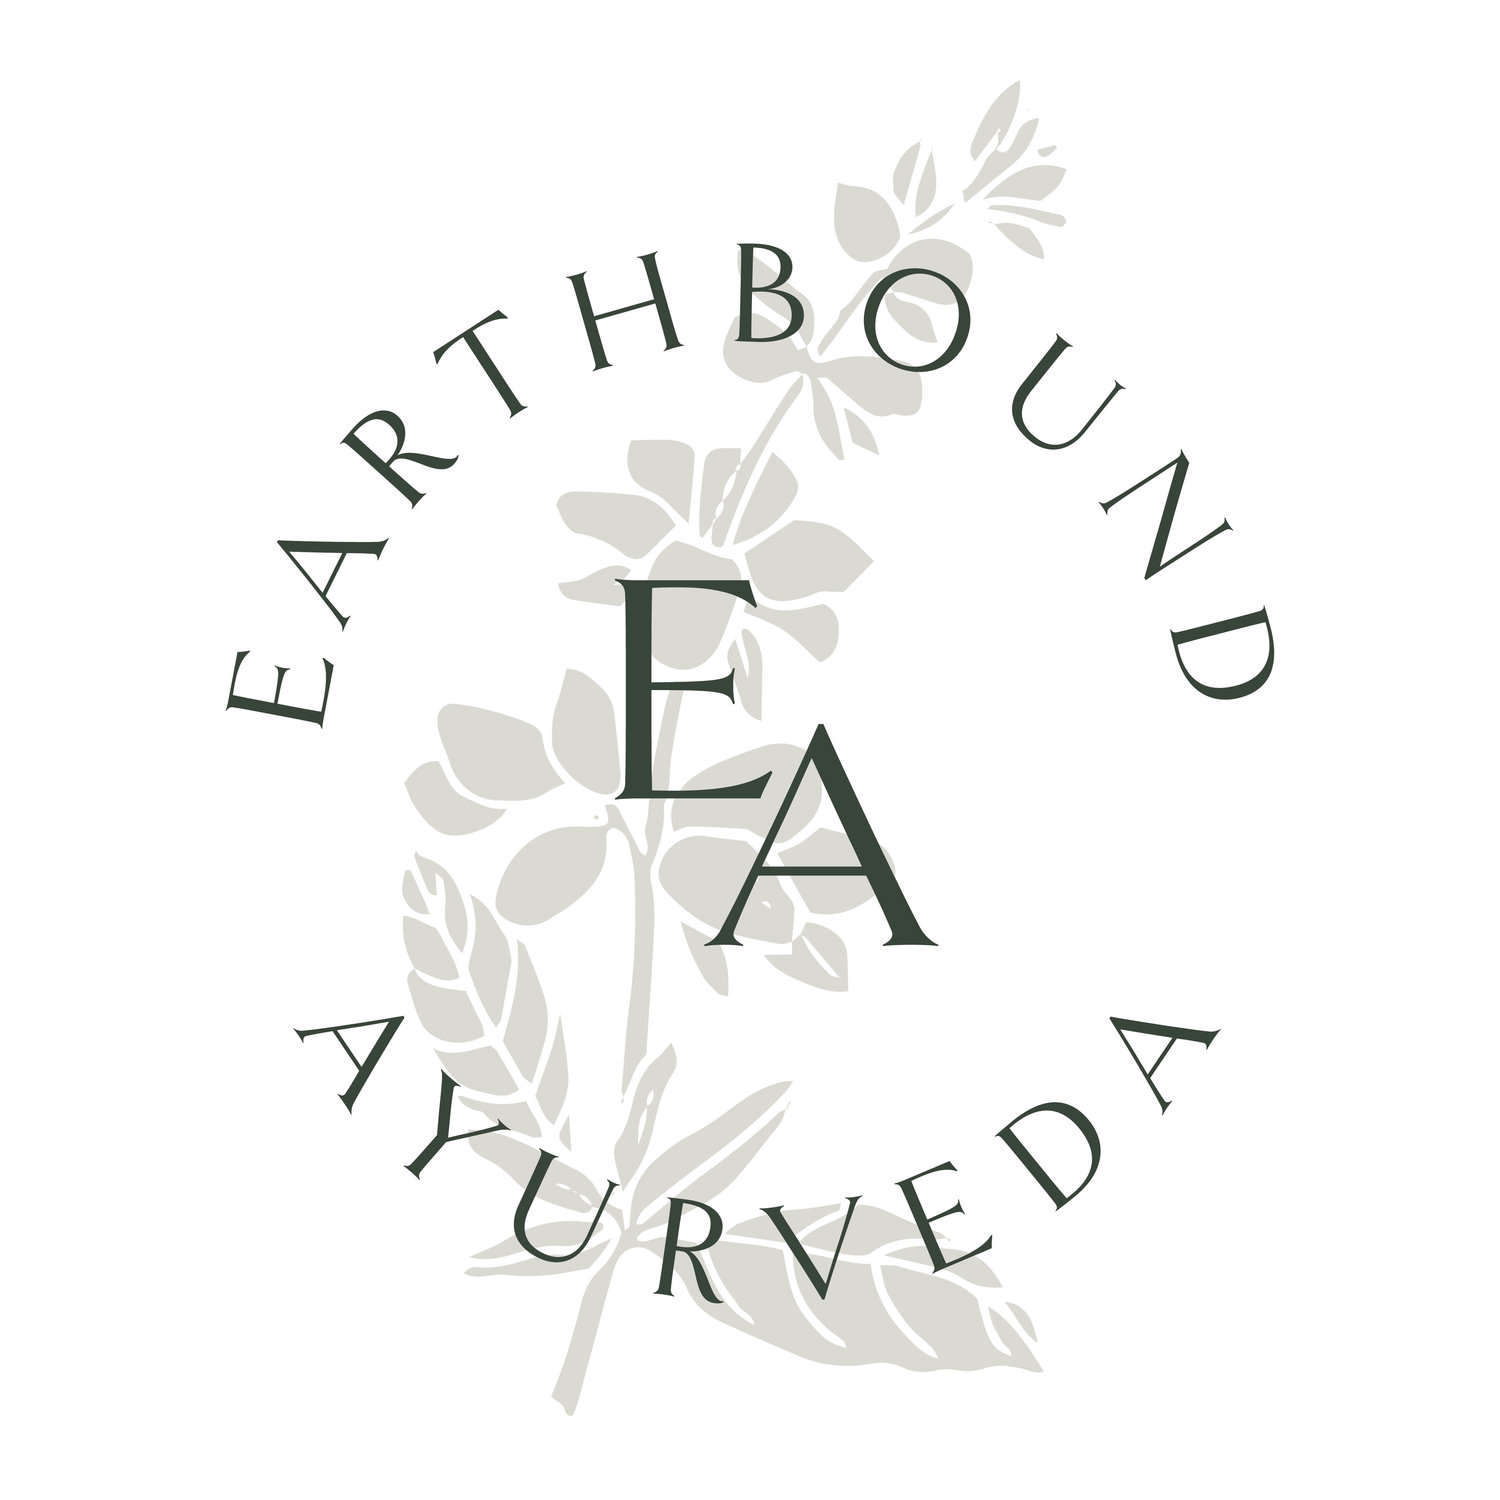 earthboundayurveda.com